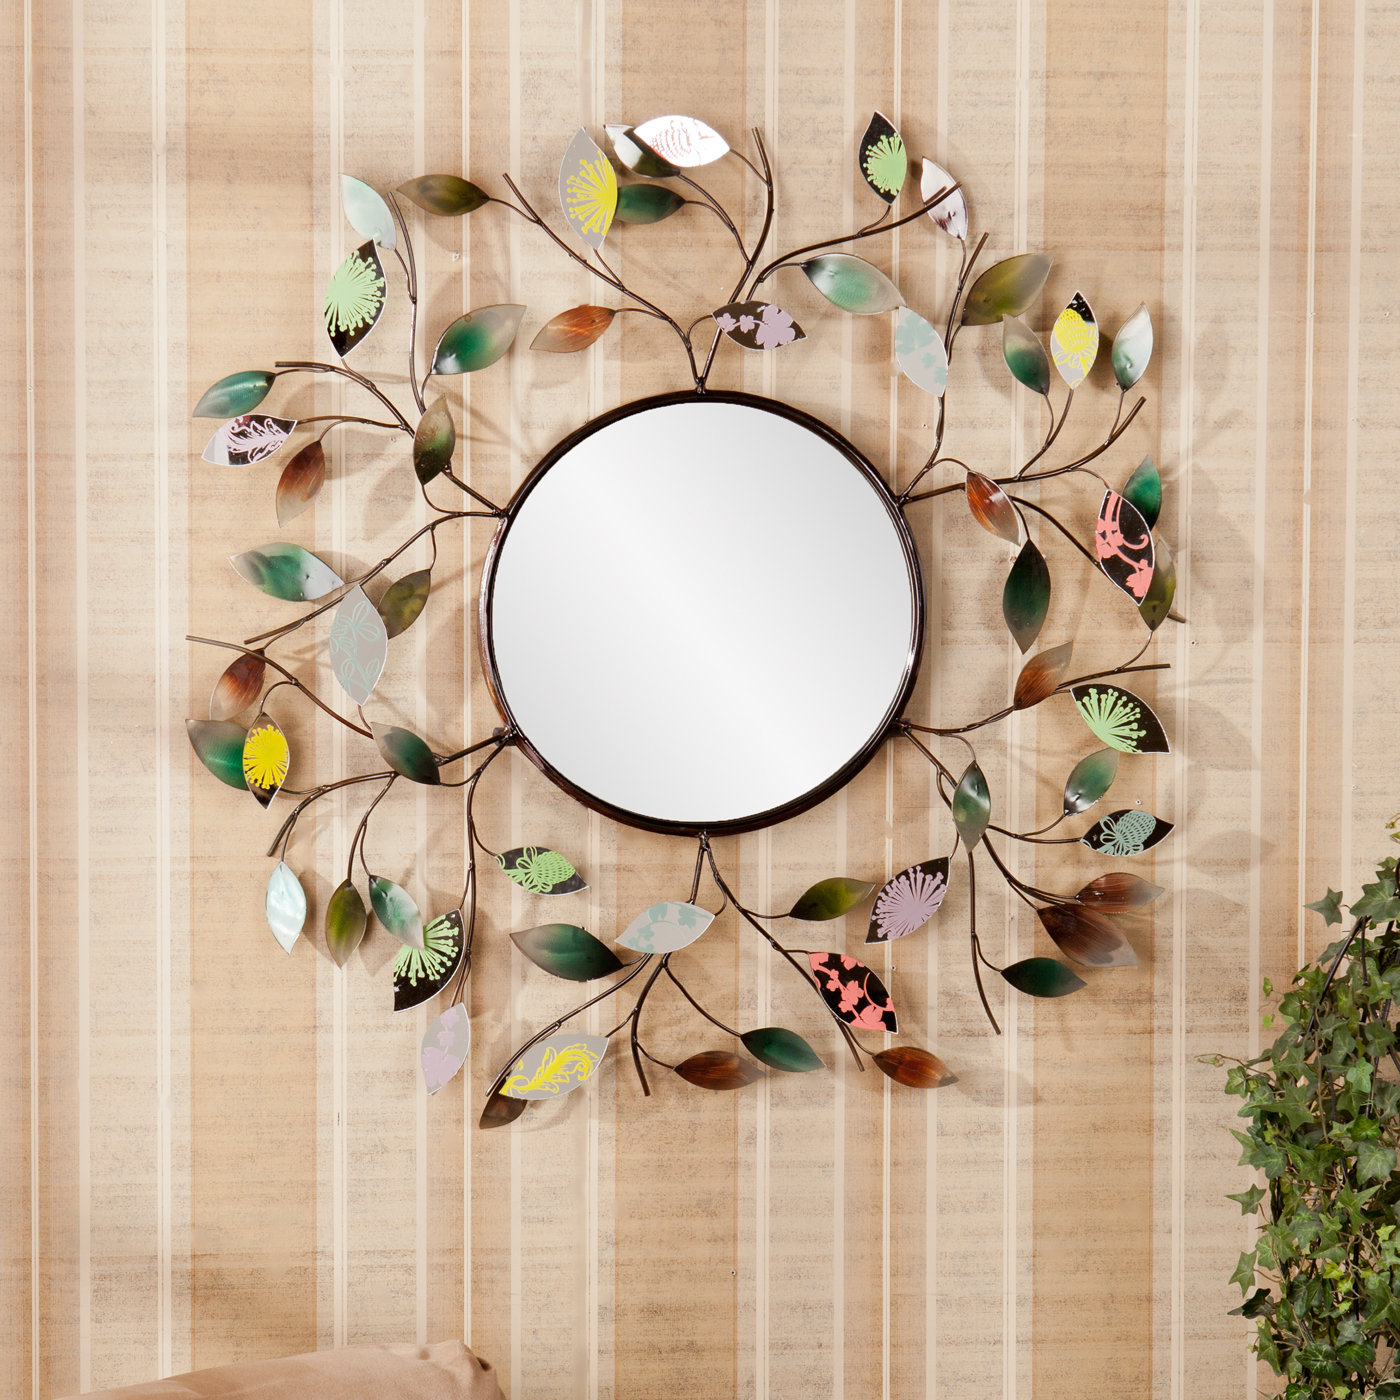 Decorative Metallic Leaf Wall Mirror In Carstens Sunburst Leaves Wall Mirrors (Image 4 of 20)